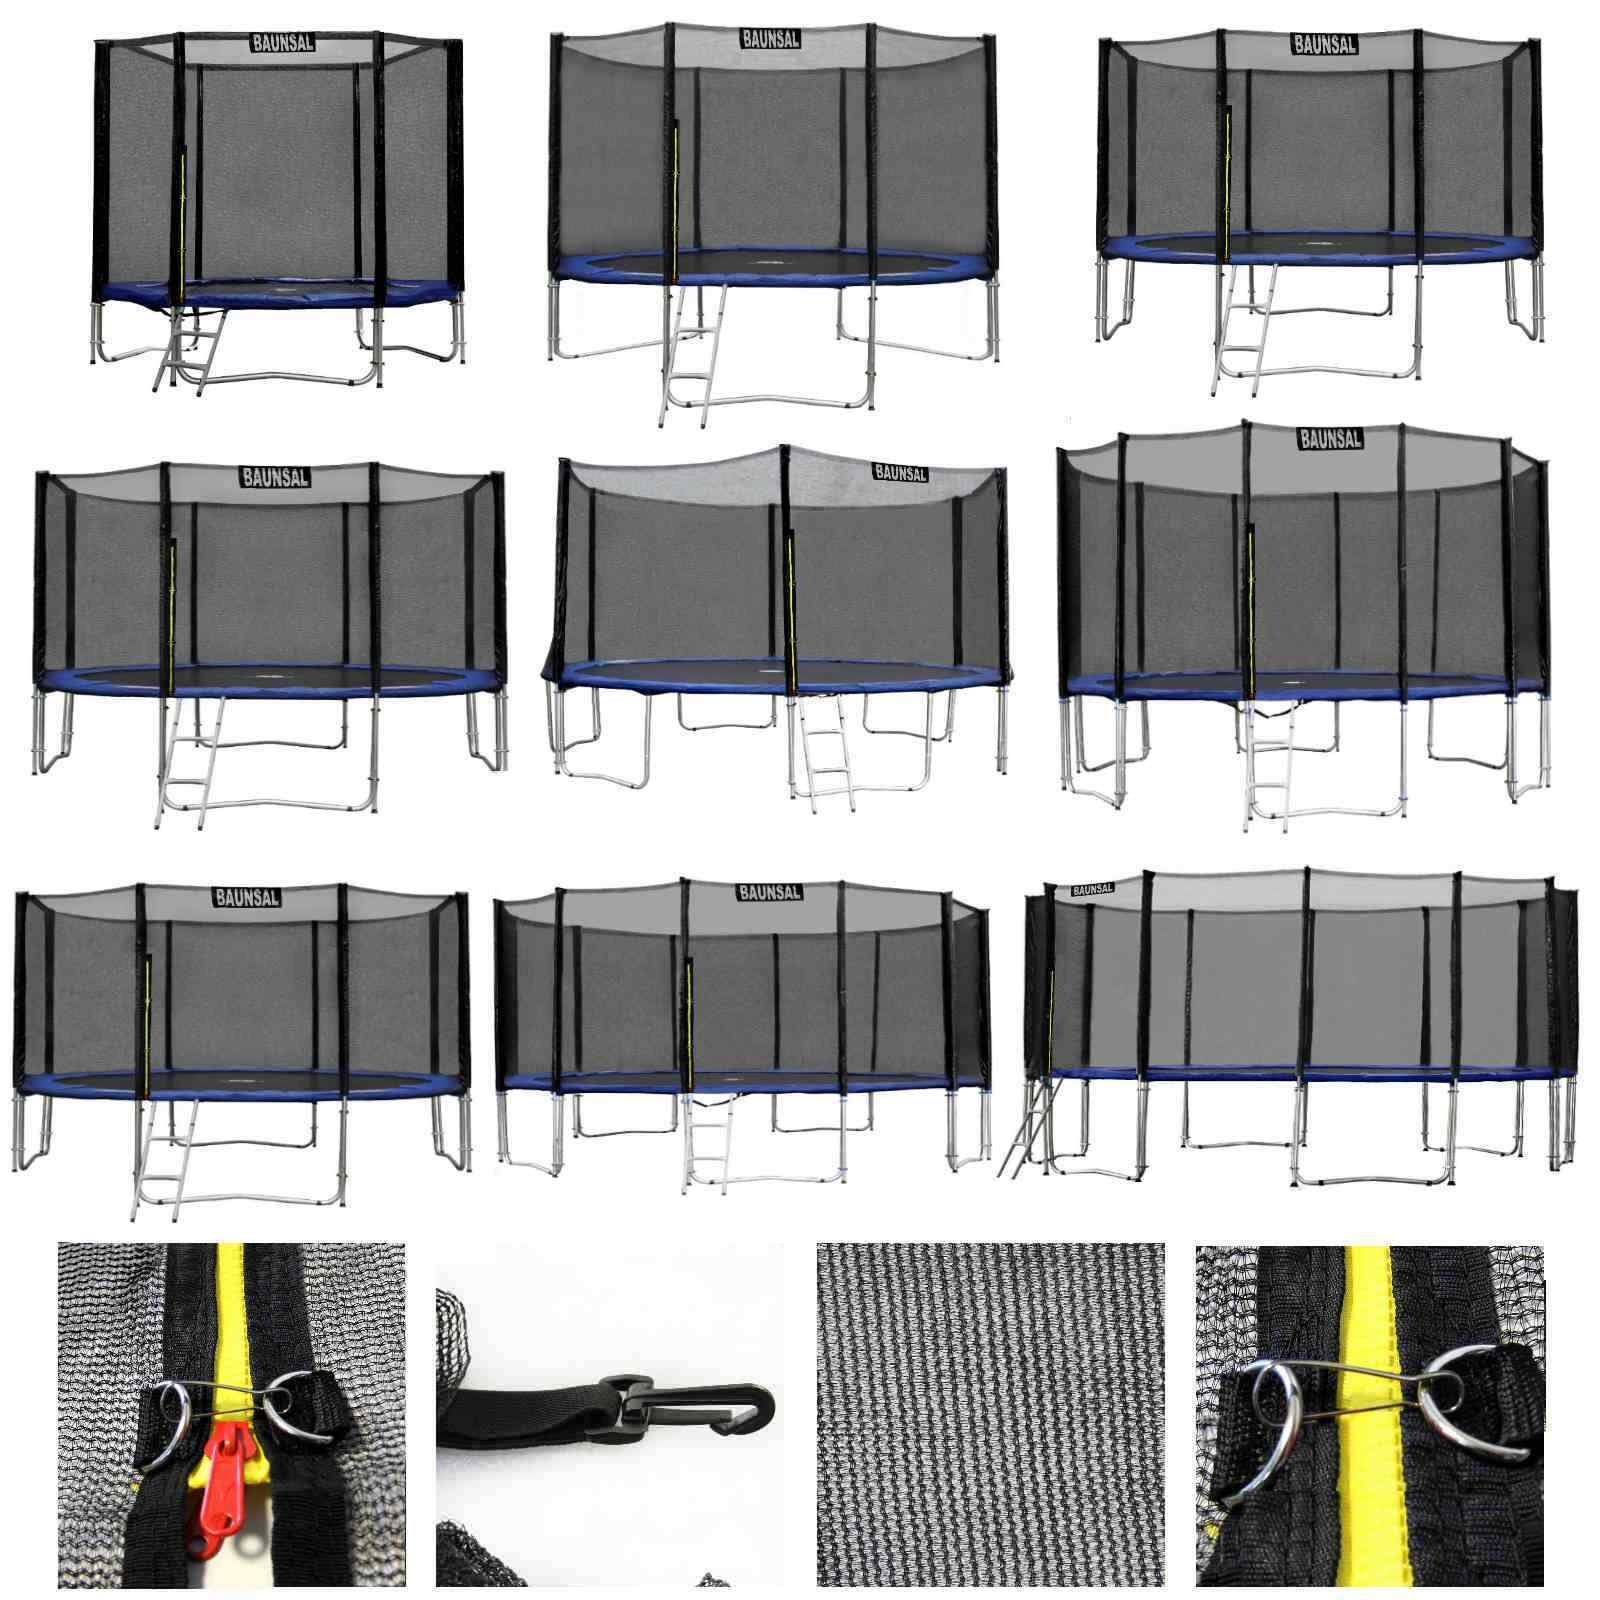 sicherheitsnetz fangnetz schutznetz netz f r trampolin von 183 bis 490 cm eur 24 99 picclick it. Black Bedroom Furniture Sets. Home Design Ideas